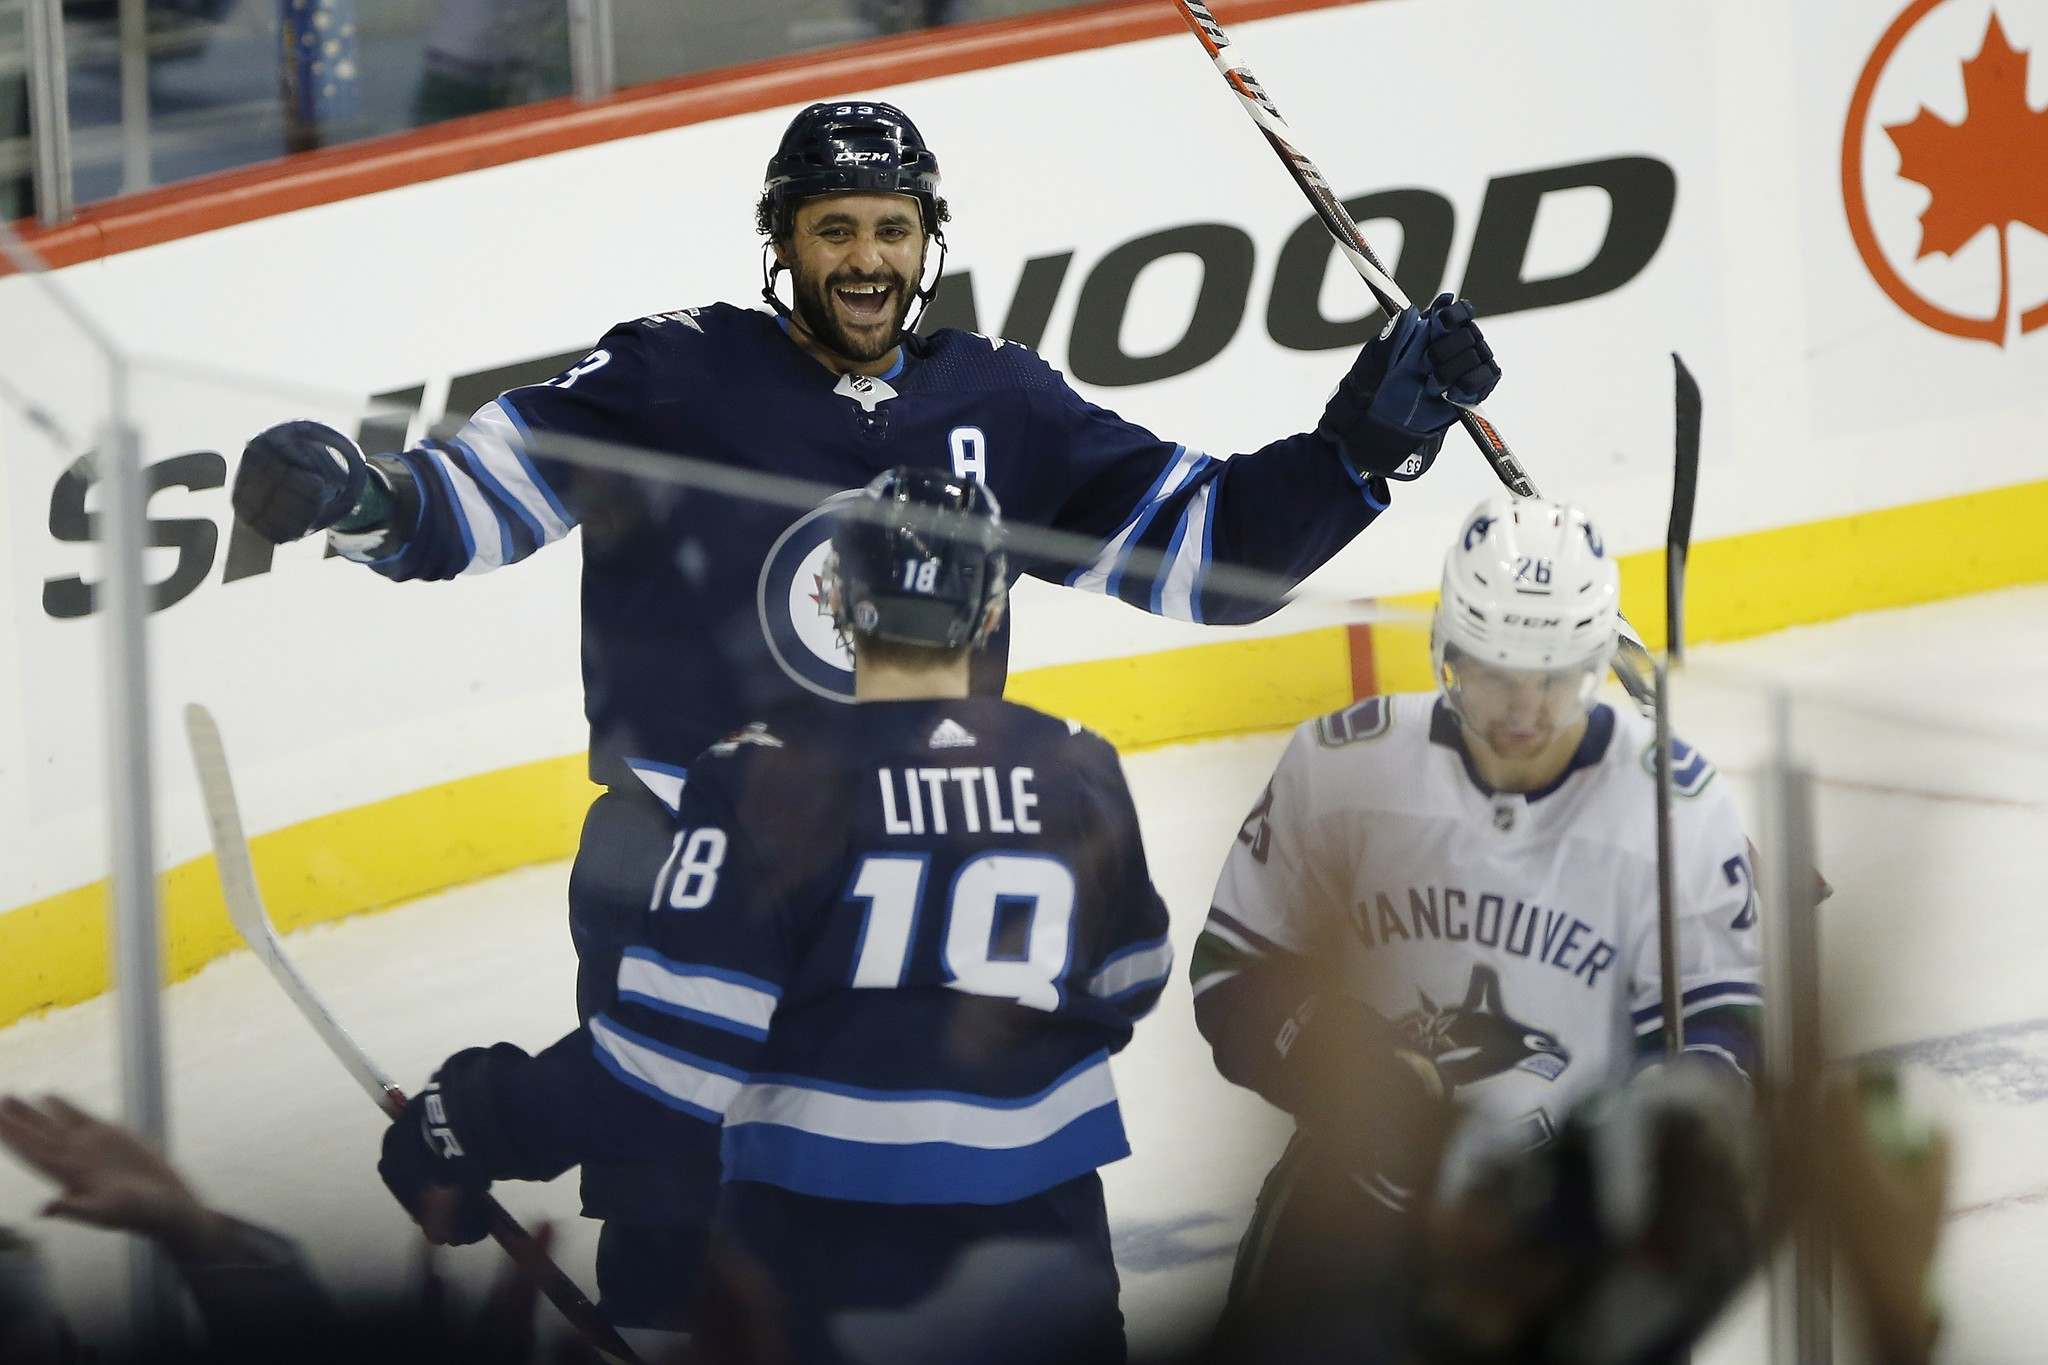 Winnipeg Jets' Dustin Byfuglien (33) and Bryan Little (18) celebrate Byfuglien's goal against the Vancouver Canucks during third period NHL action in Winnipeg on Thursday, October 18, 2018. John Woods / The Canadian Press files)</p>